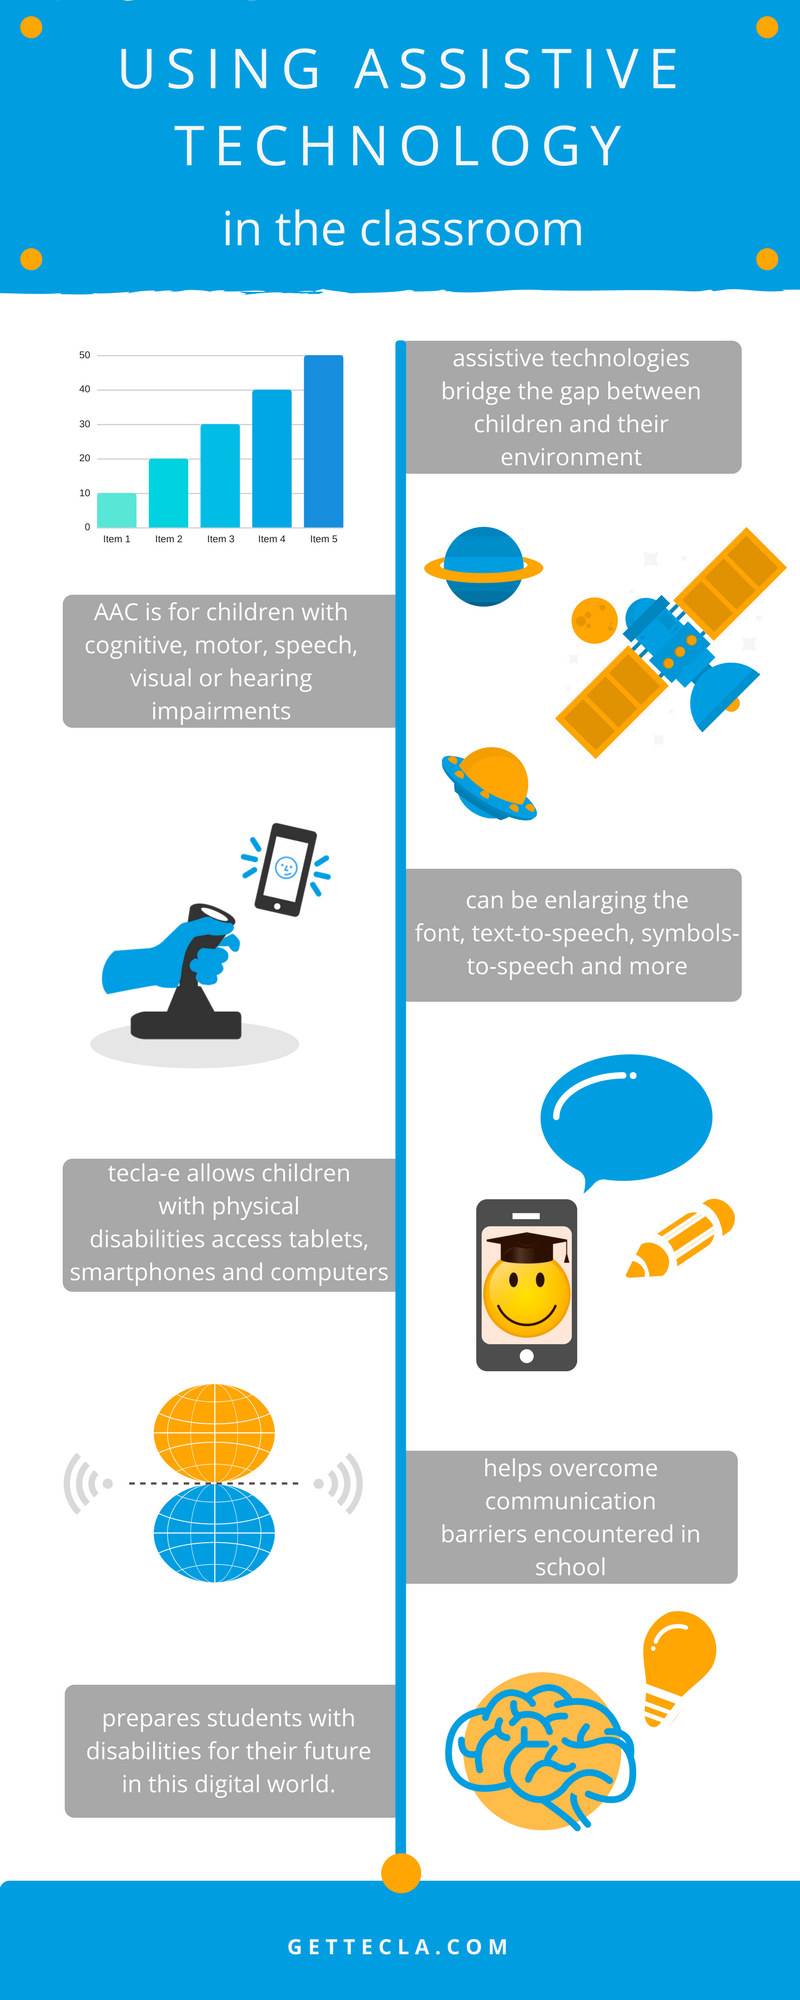 graphic: using assistive technology in the classroom